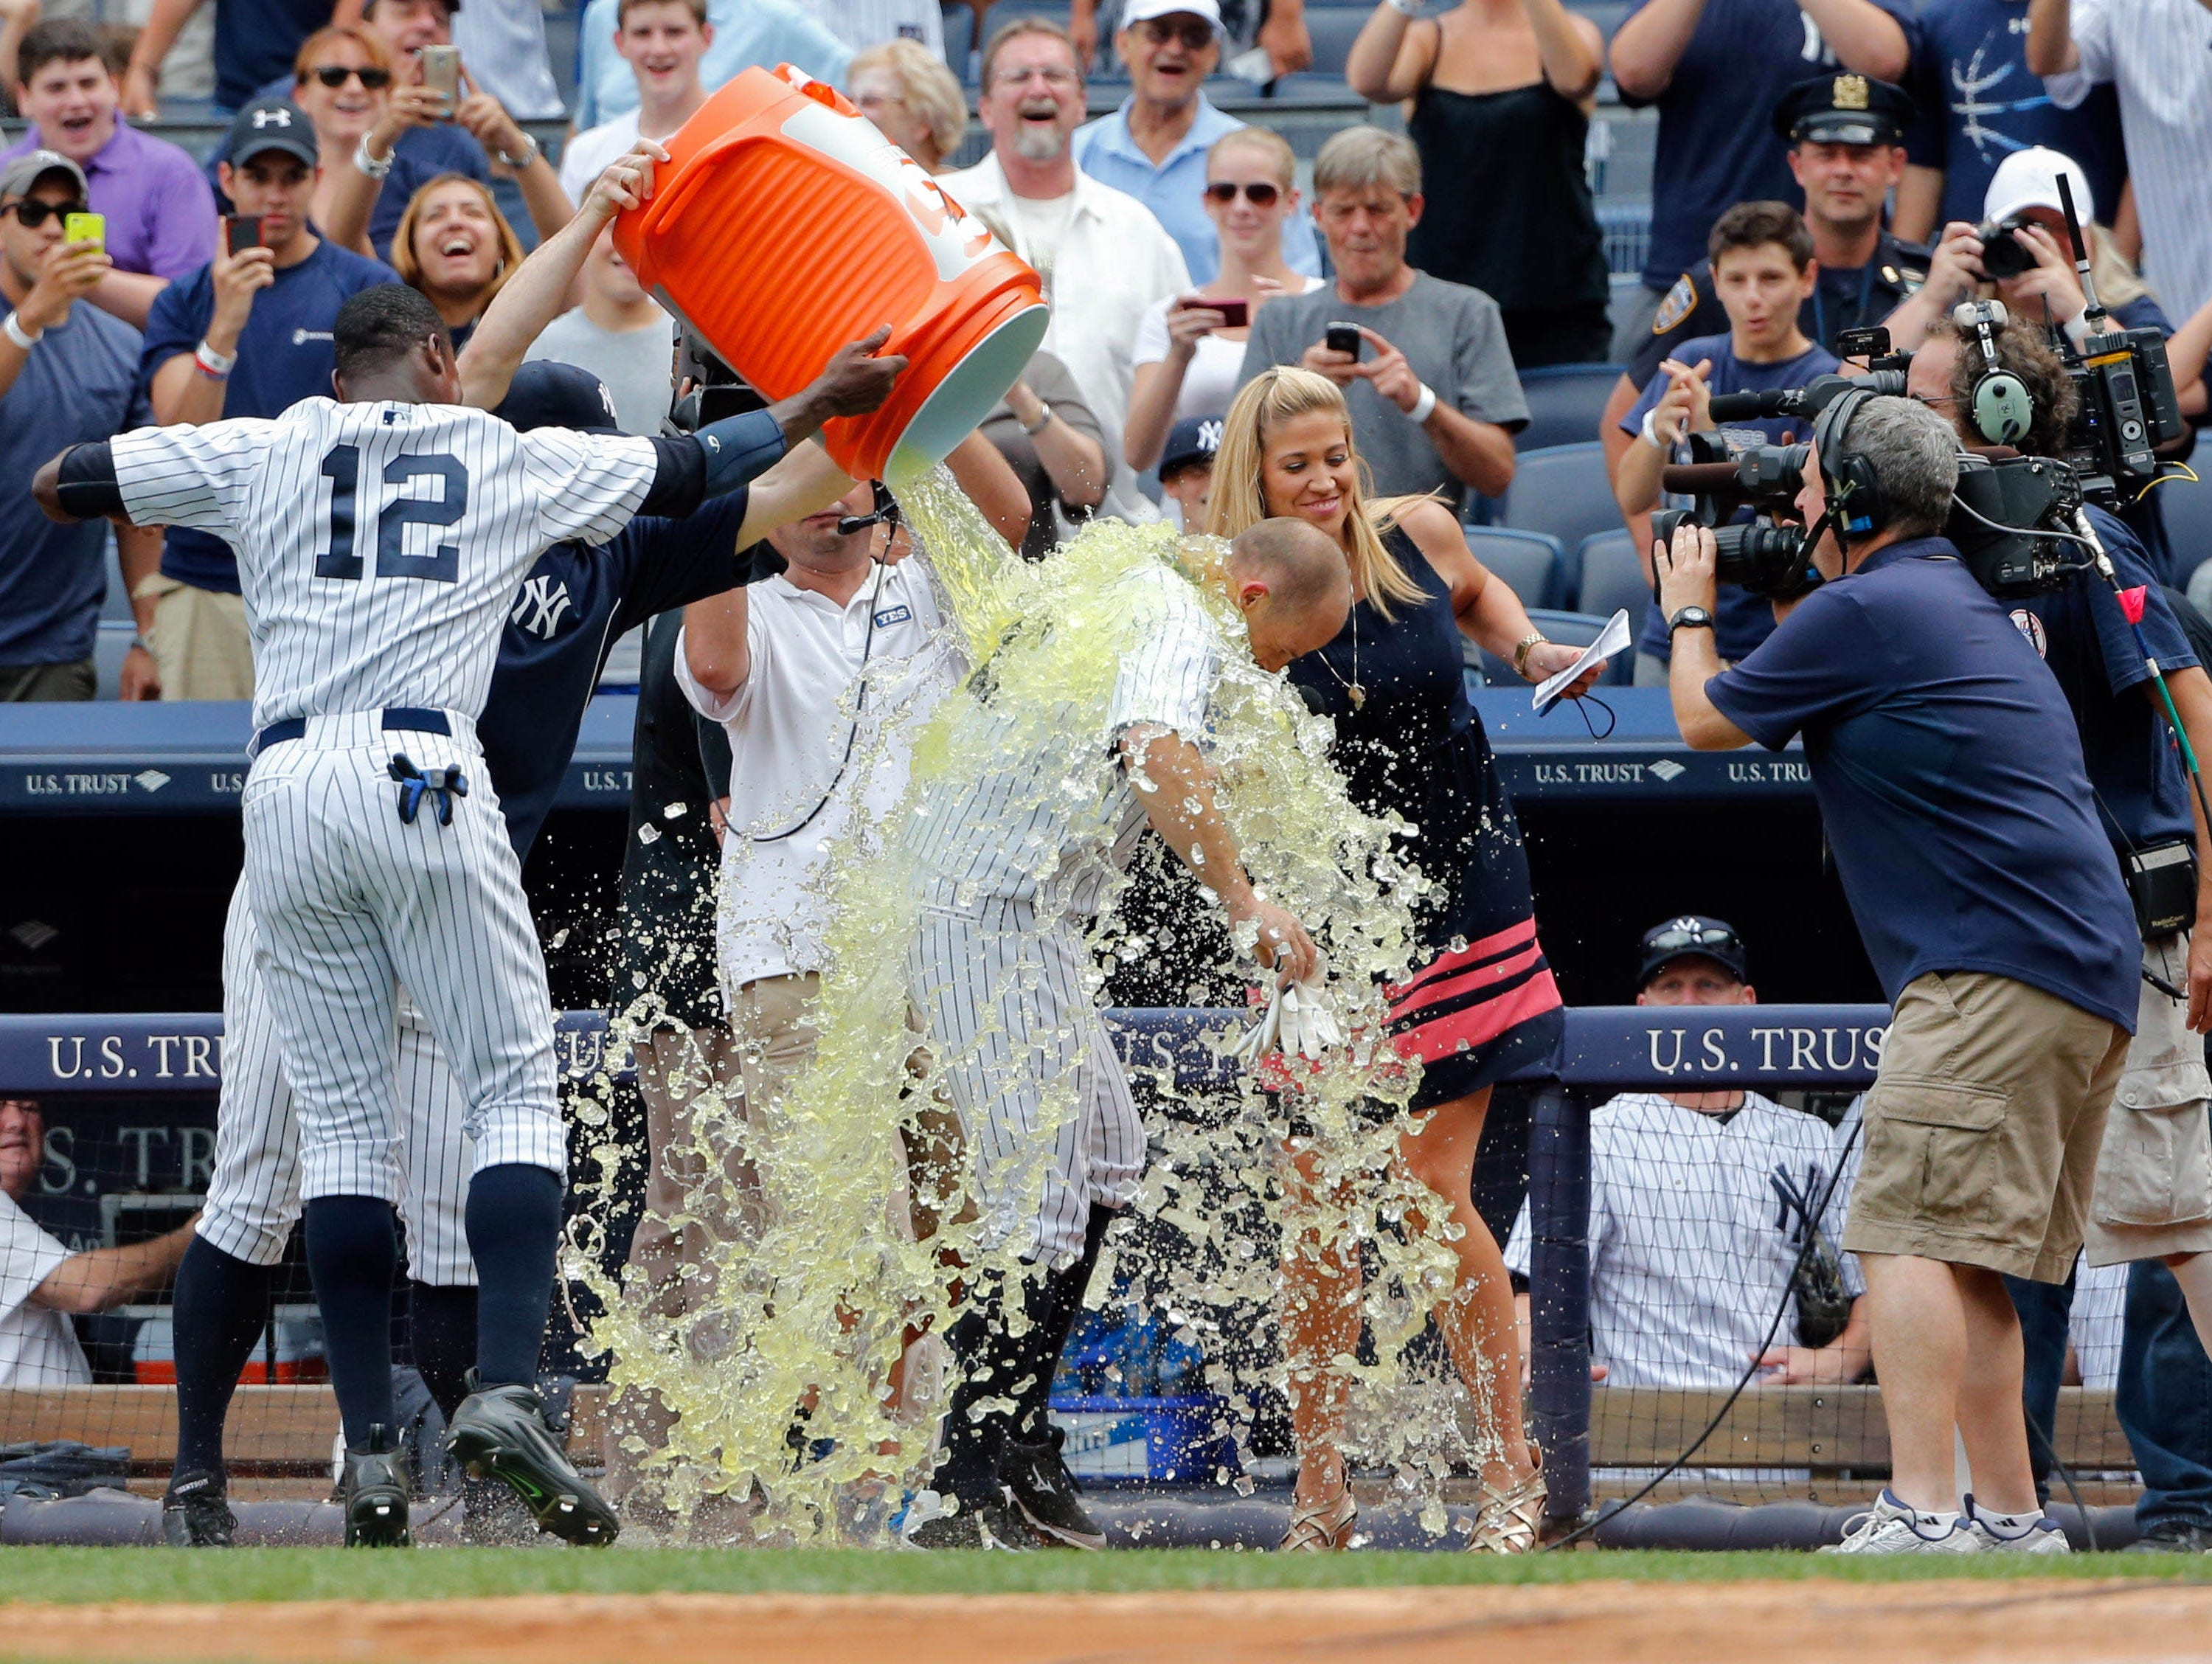 Aug. 11: Yankees center fielder Brett Gardner is dunked with Gatorade by teammates including Alfonso Soriano after hitting a walk off home run against the Tigers at Yankee Stadium.